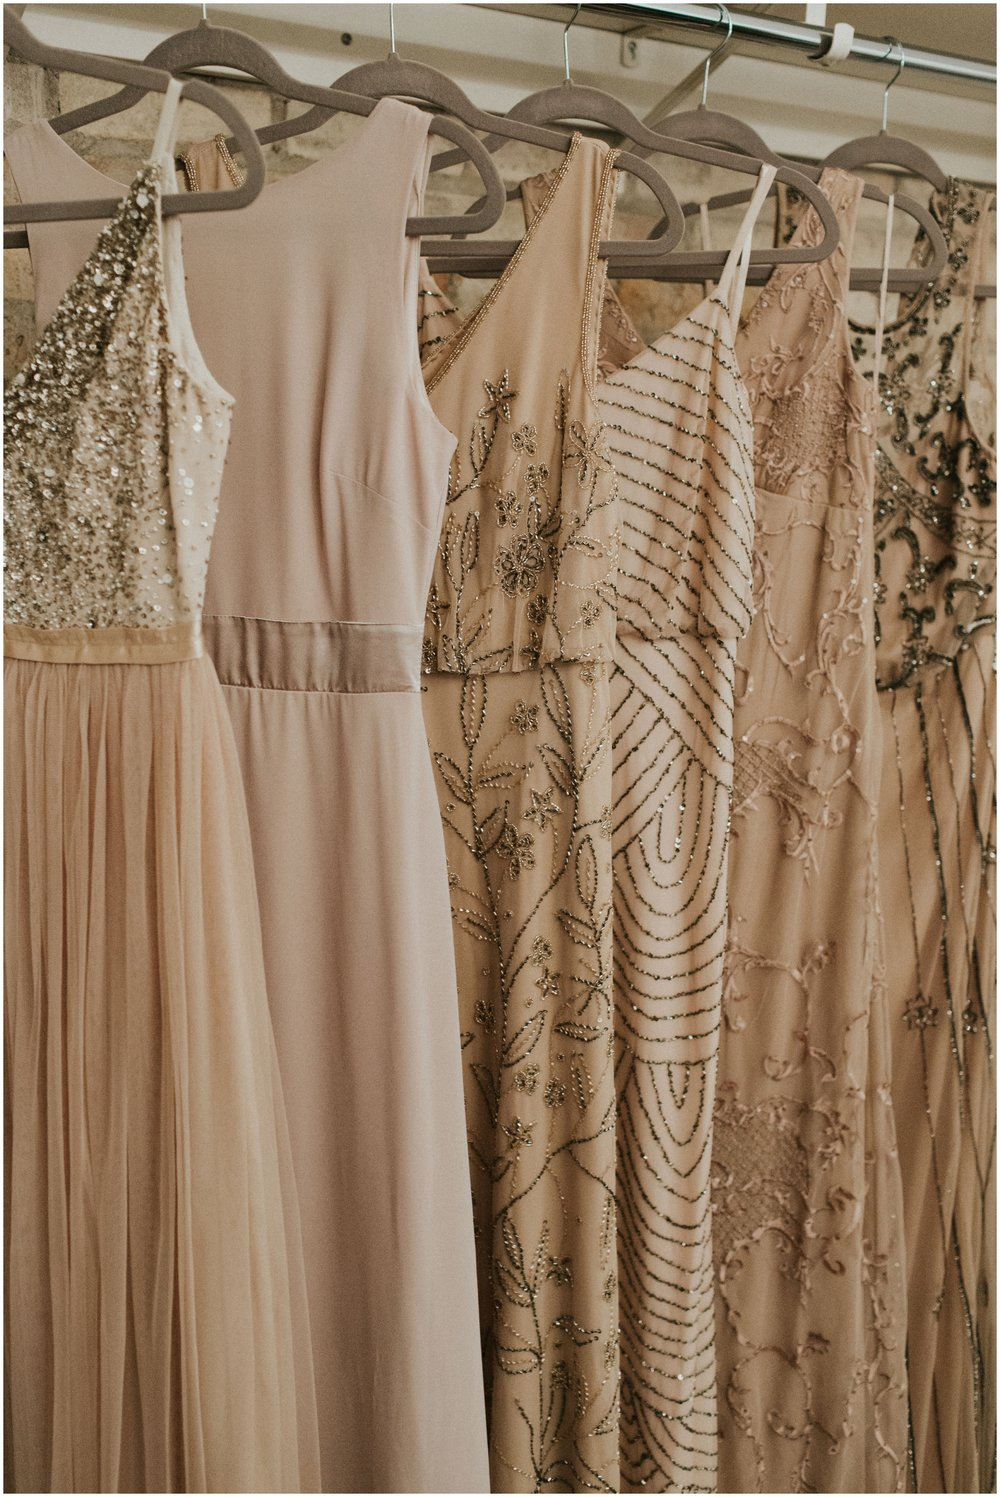 bridesmaids dresses detail